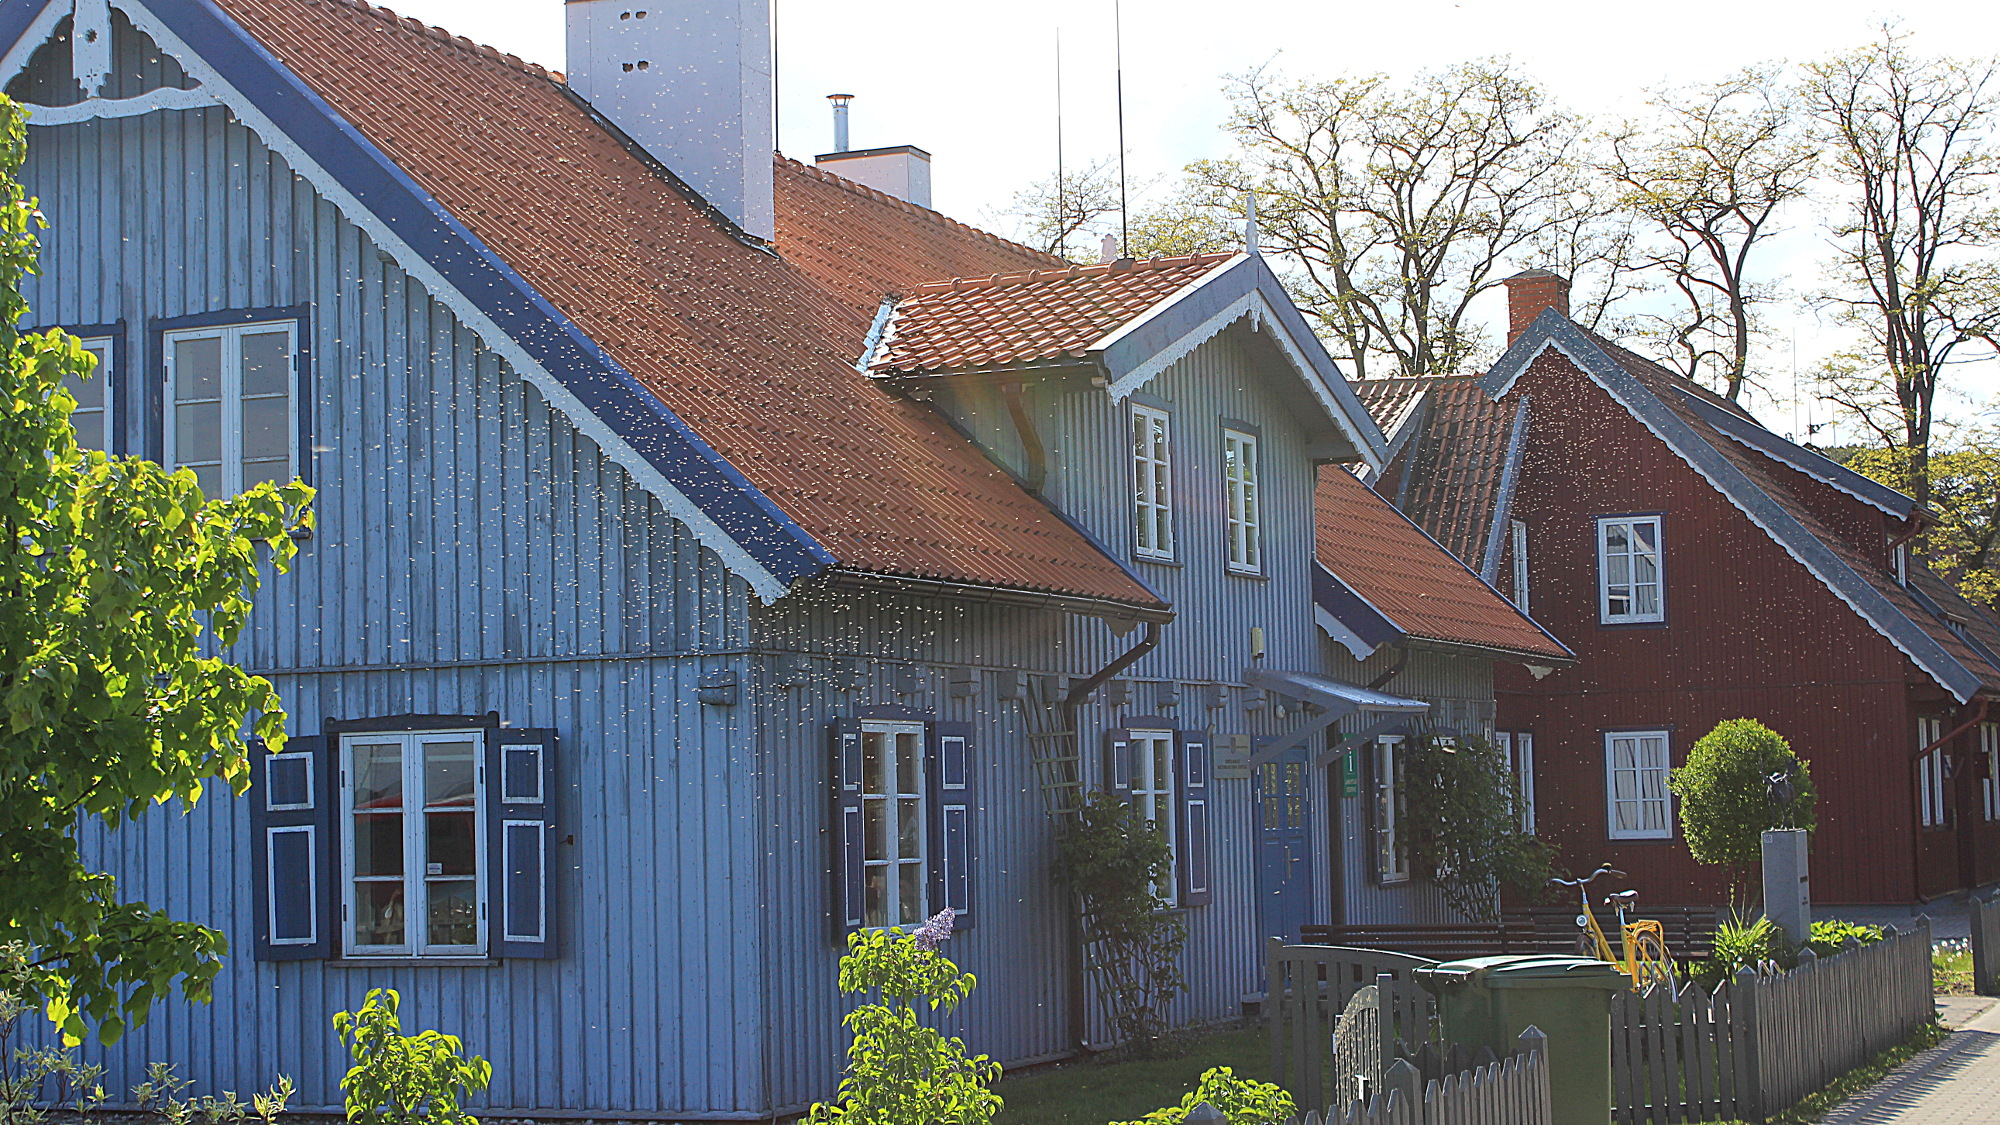 A blue idyllic wooden house with a wooden fence in sunlight and plenty of flying insects in front.